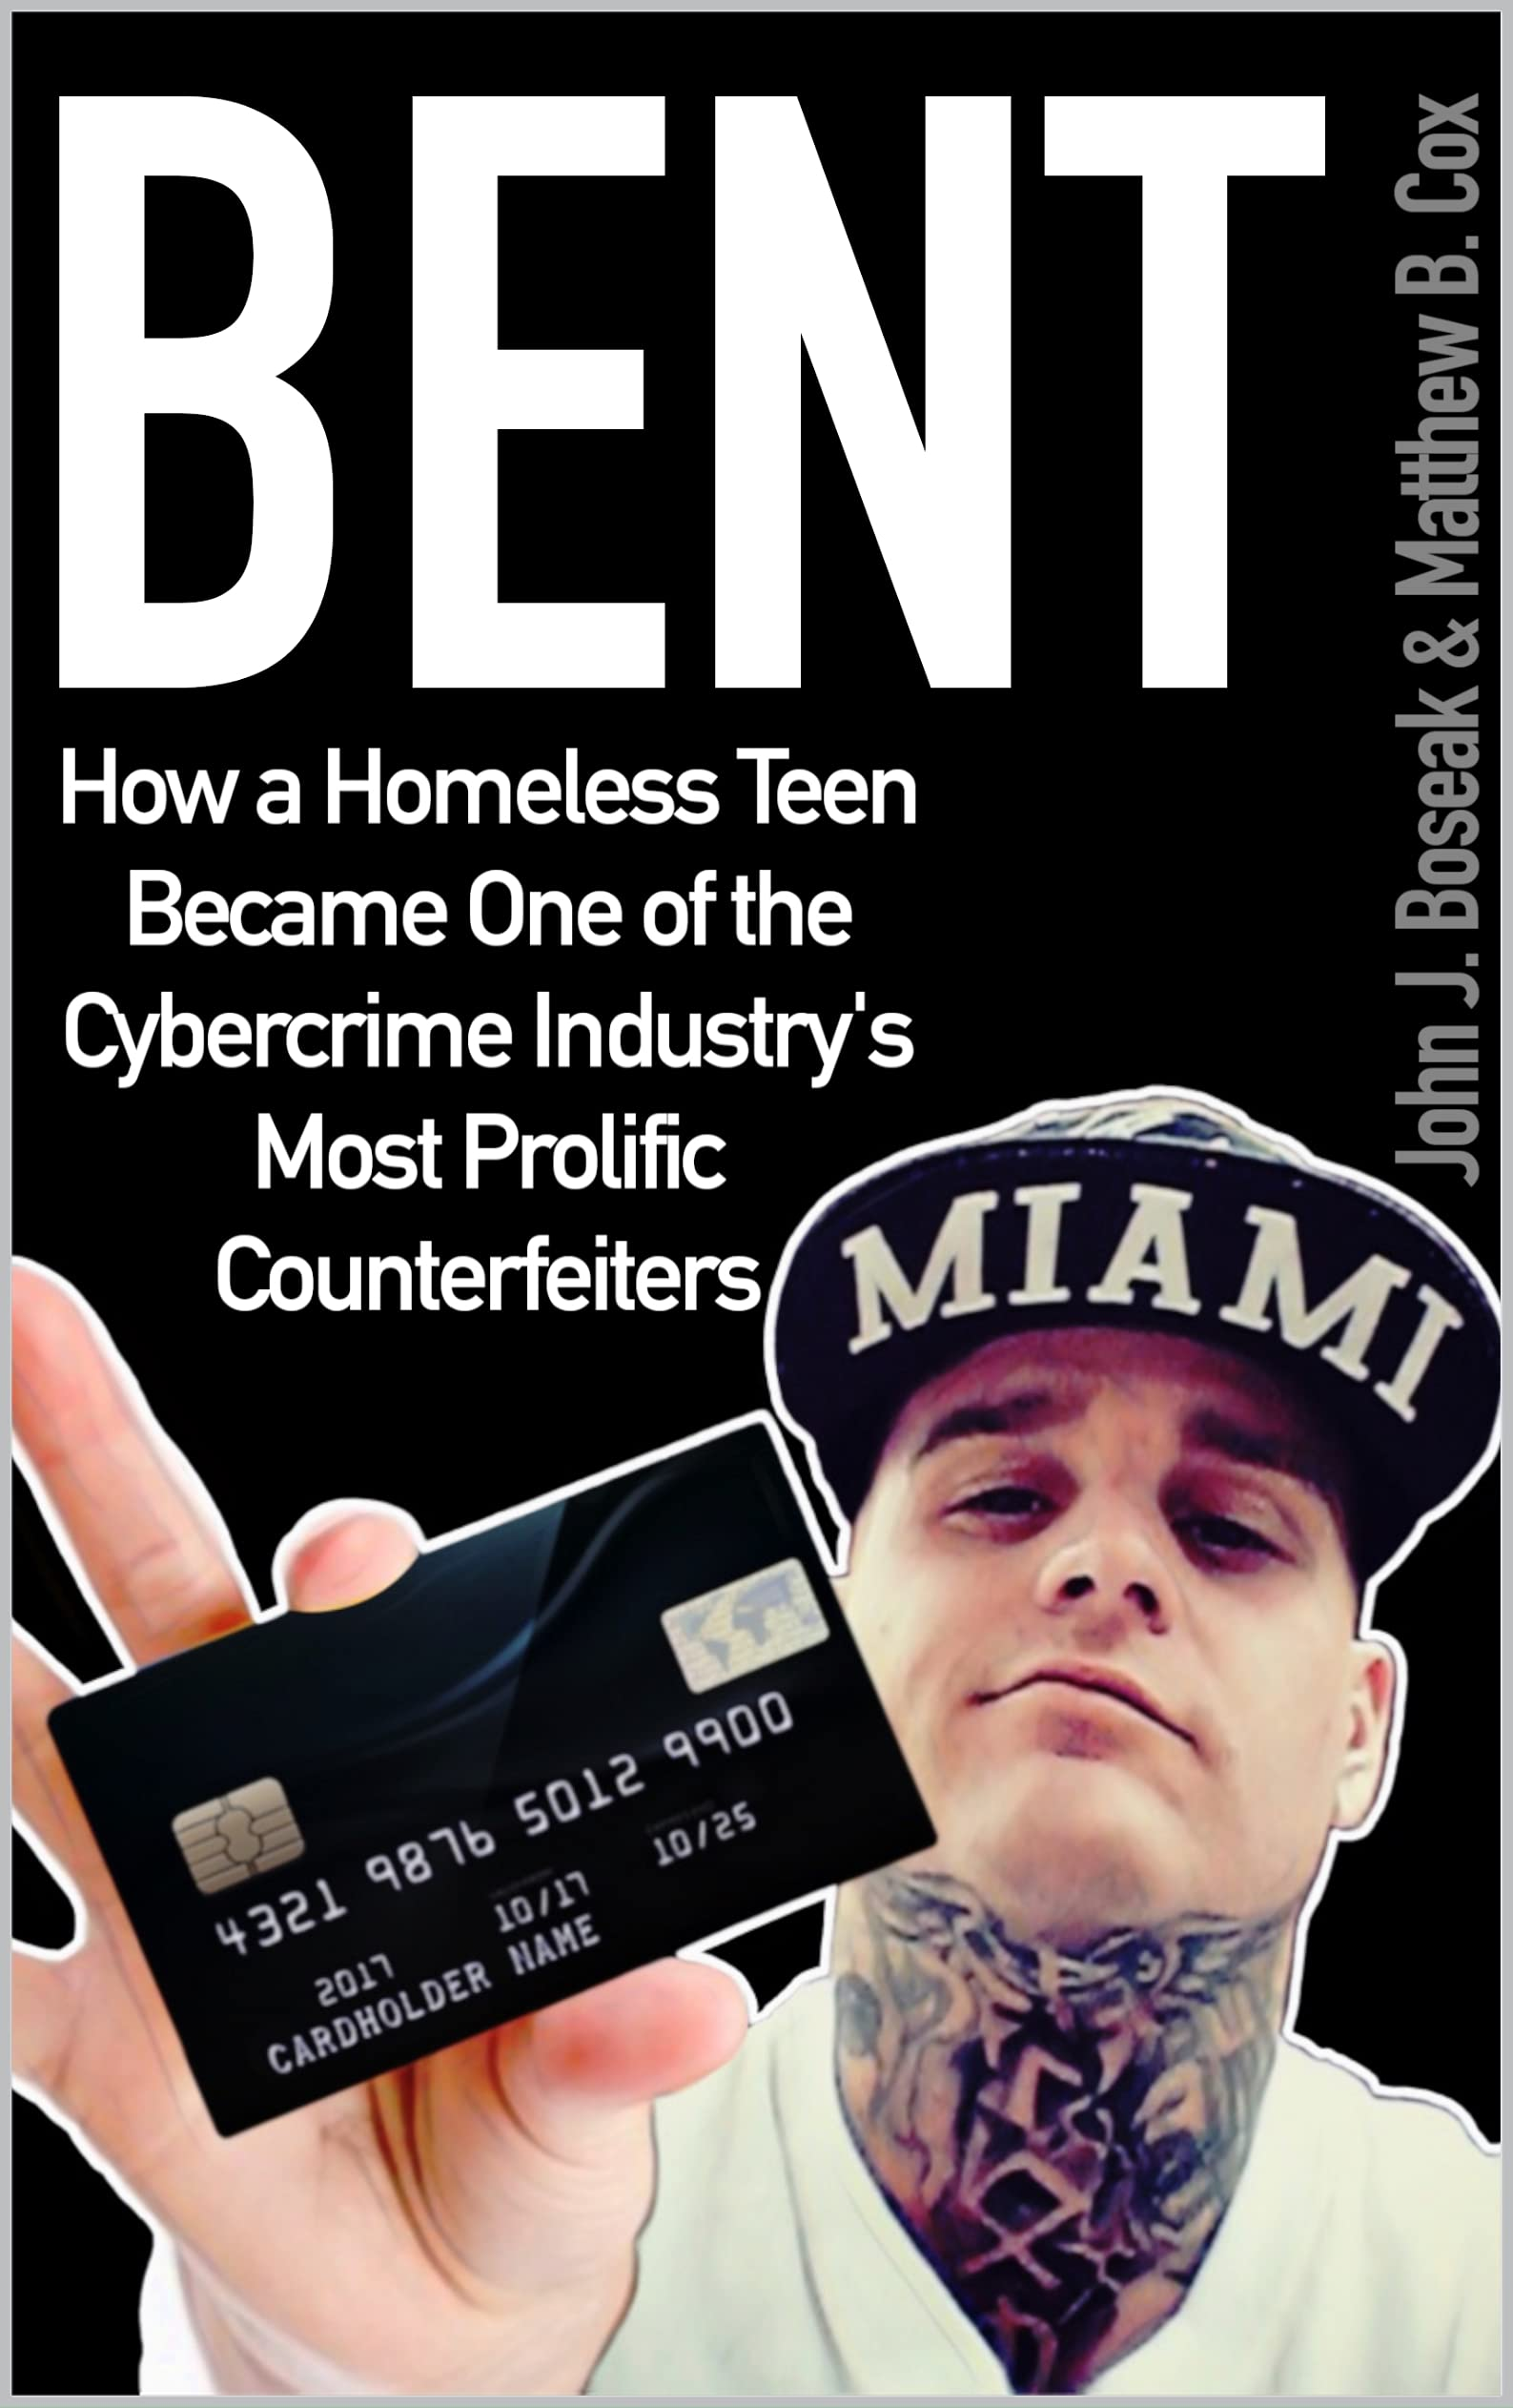 Bent: How a Homeless Teen Become One of the Cybercrime Industry's Most Prolific Counterfeiters